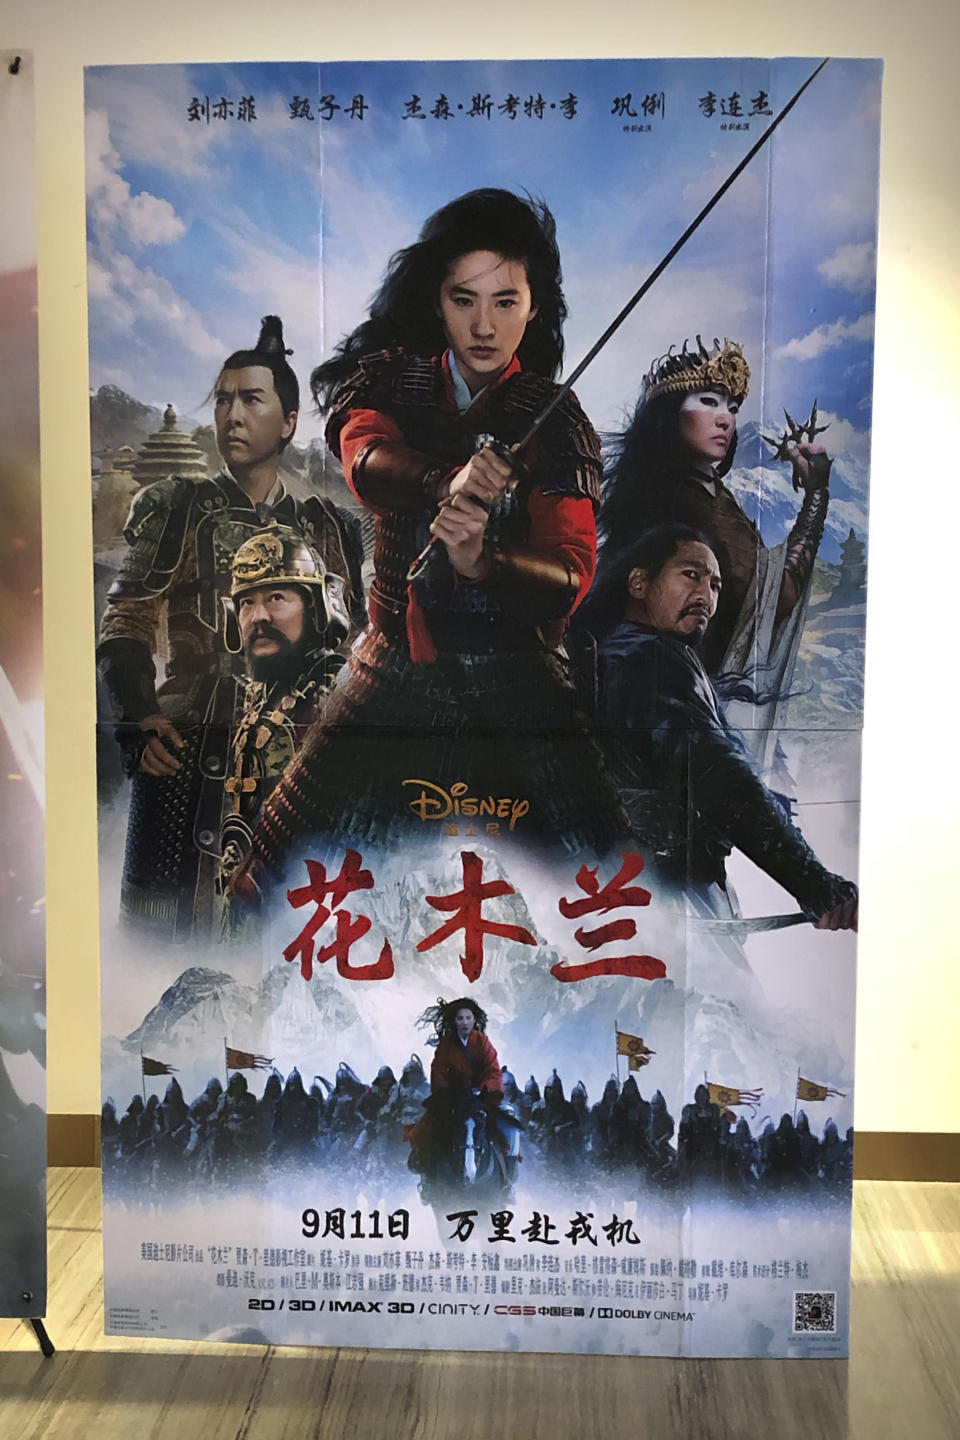 """A poster for the Disney movie """"Mulan"""" is displayed at a movie theater in Beijing on Sept. 11, 2020. The remake of """"Mulan"""" struck all the right chords to be a hit in the key Chinese market. Disney cast beloved actresses Liu Yifei as Mulan and removed a popular dragon sidekick in the original to cater to Chinese tastes. (AP Photo/Mark Schiefelbein)"""